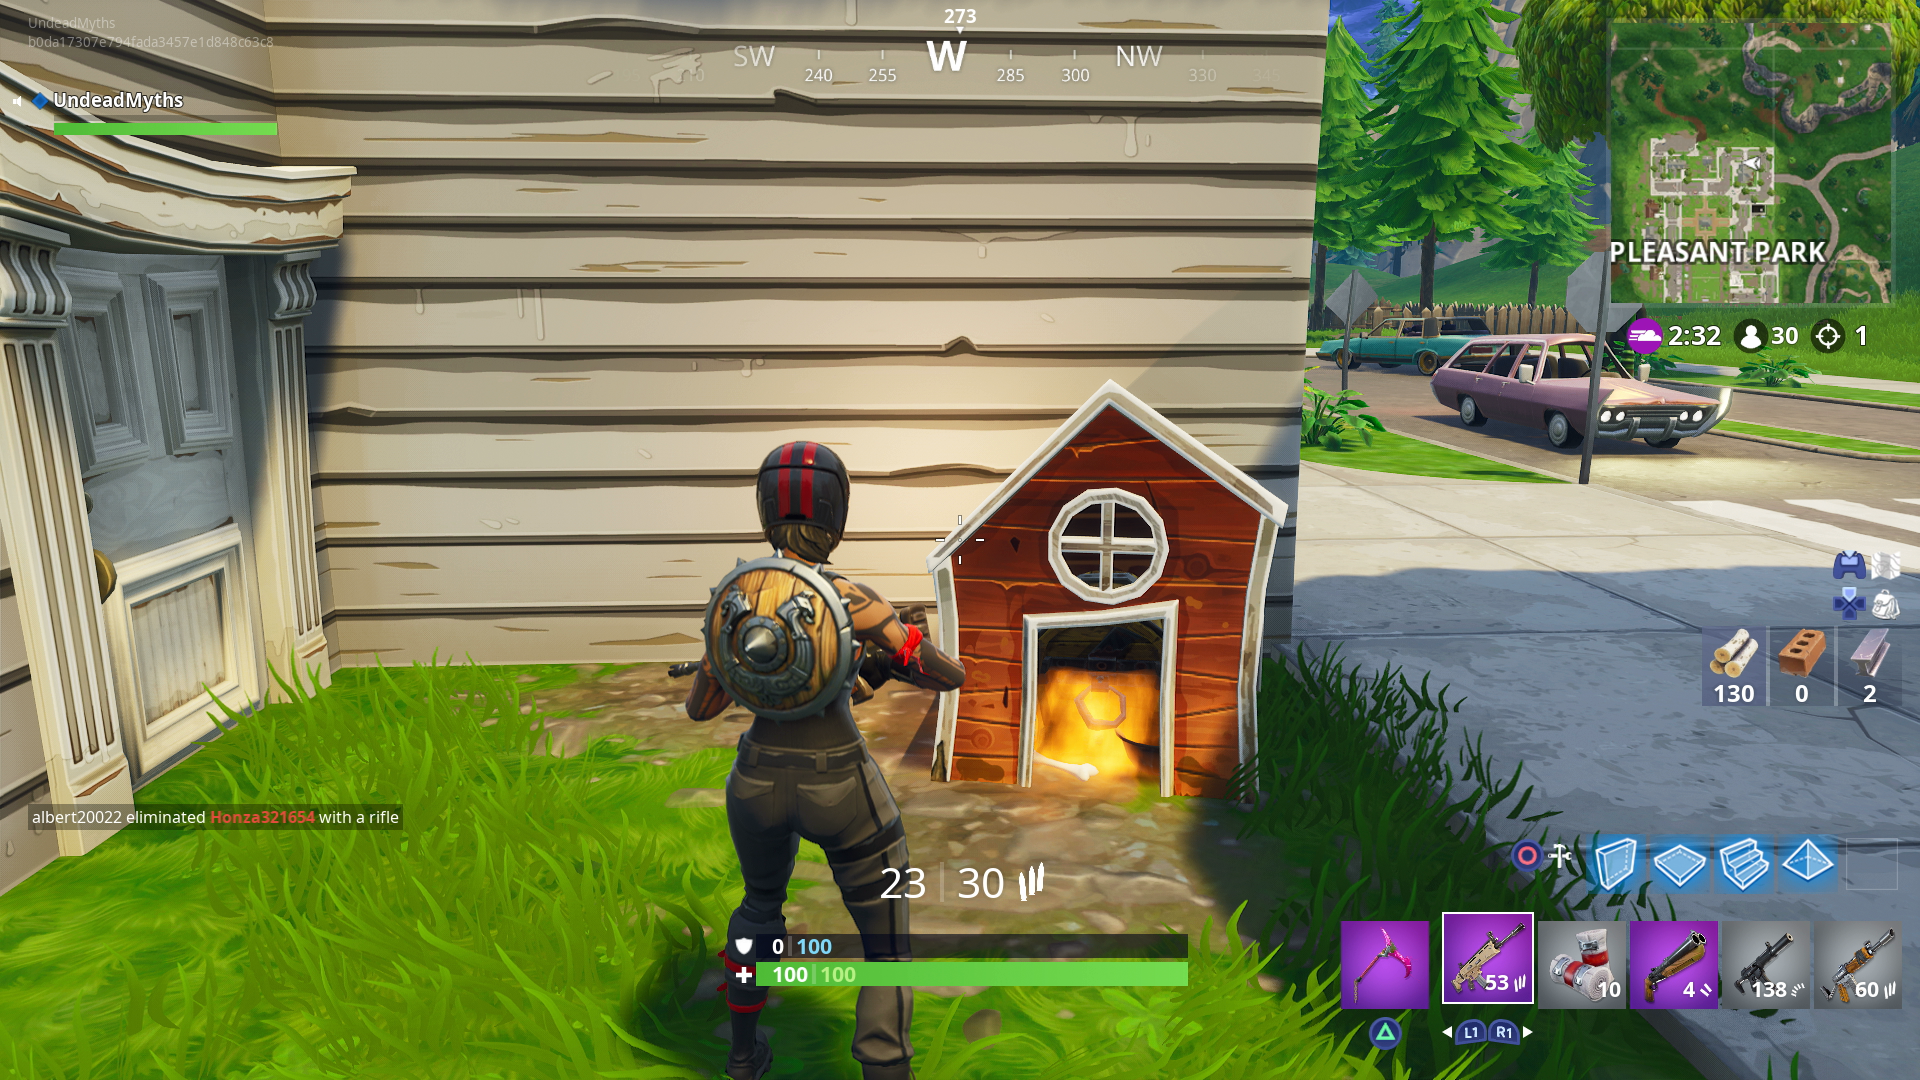 in the north east corner of the area there s a dog house containing a chest - pleasant park fortnite